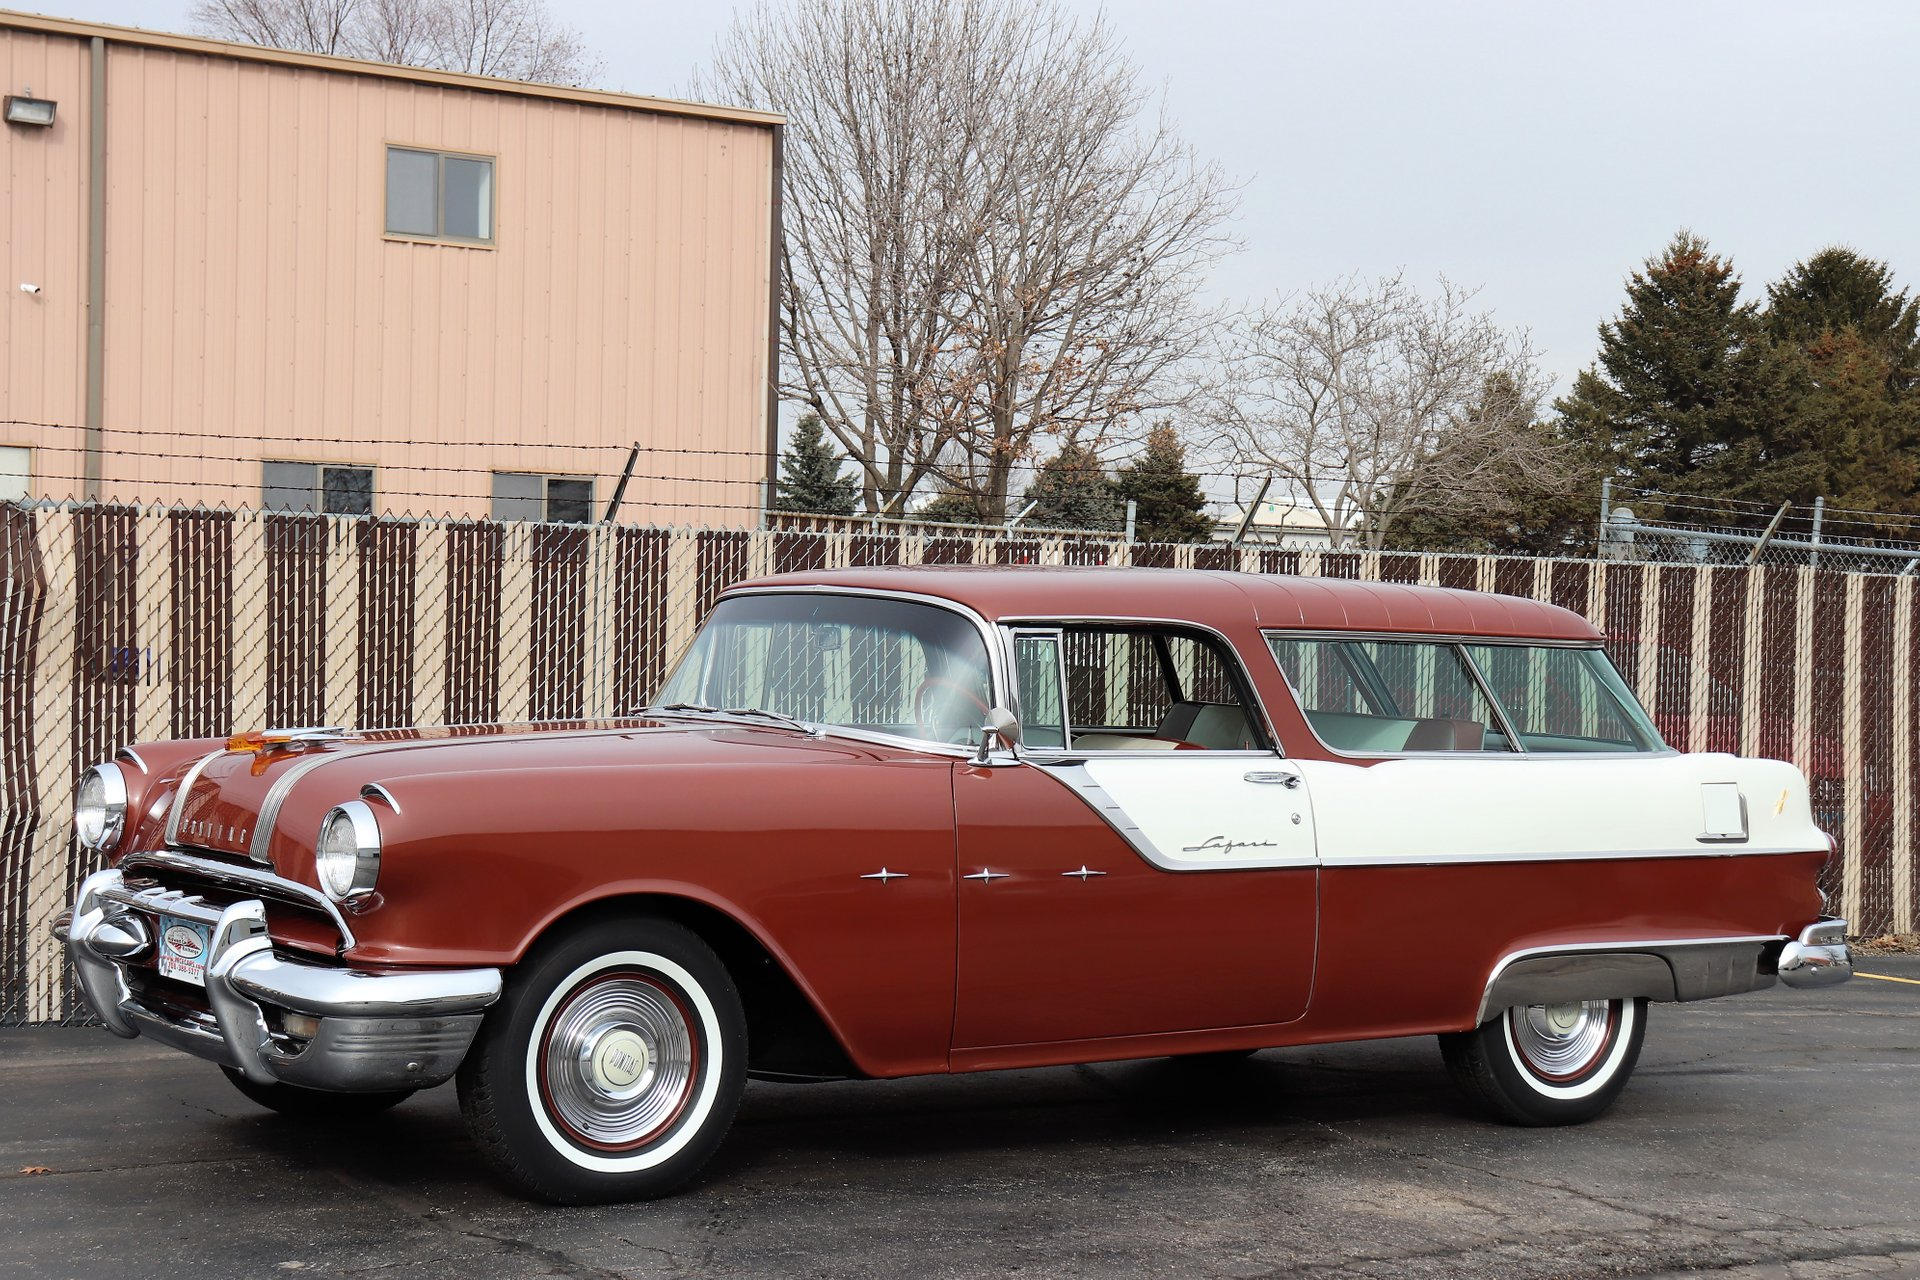 1955 pontiac star chief custom safari station wagon